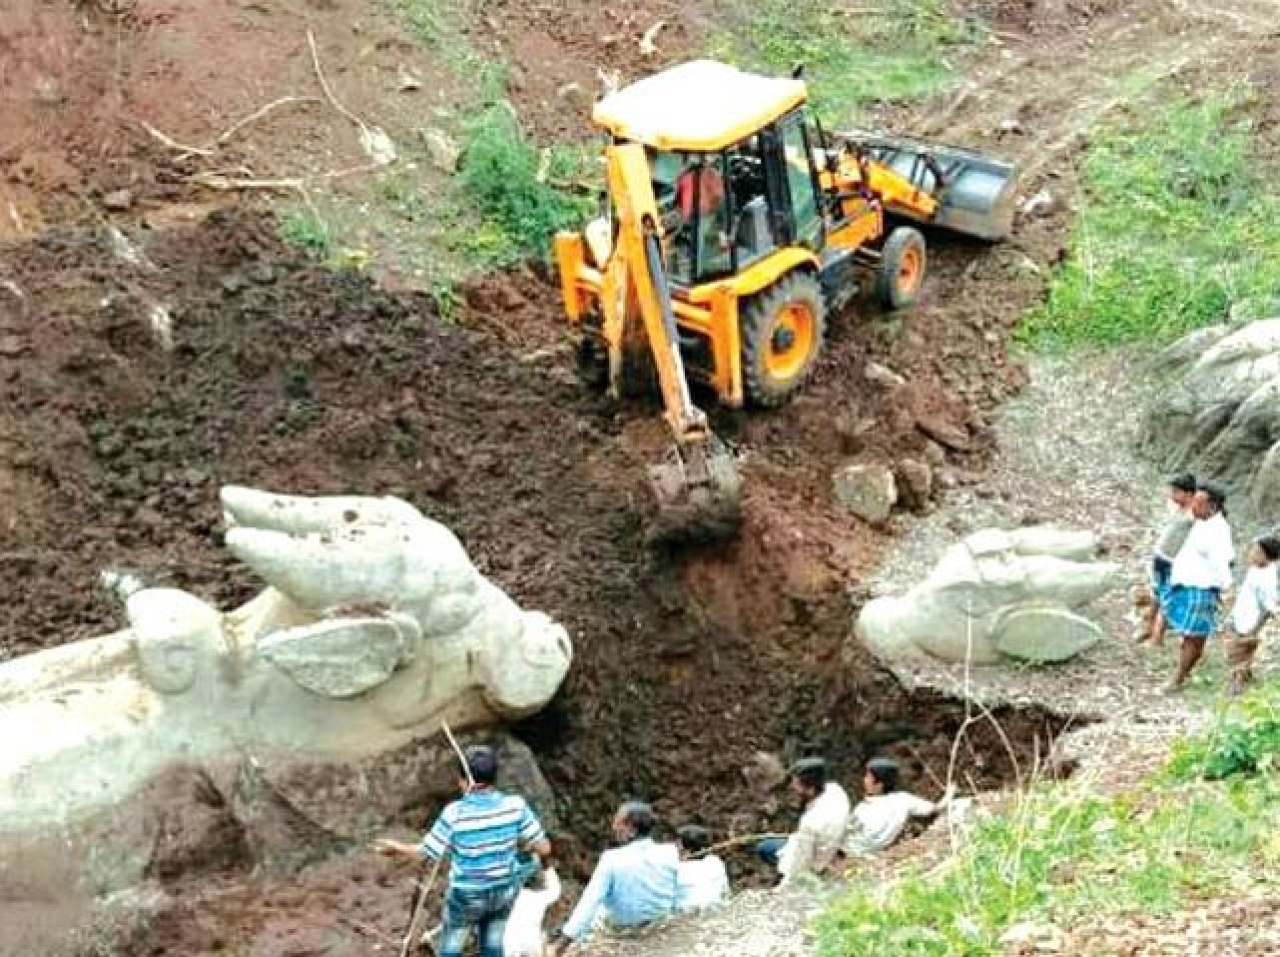 Mysore Maharaja's Dream Comes True: Centuries Old Nandi Monoliths Excavated In  Arsinakere After Decades Of Effort